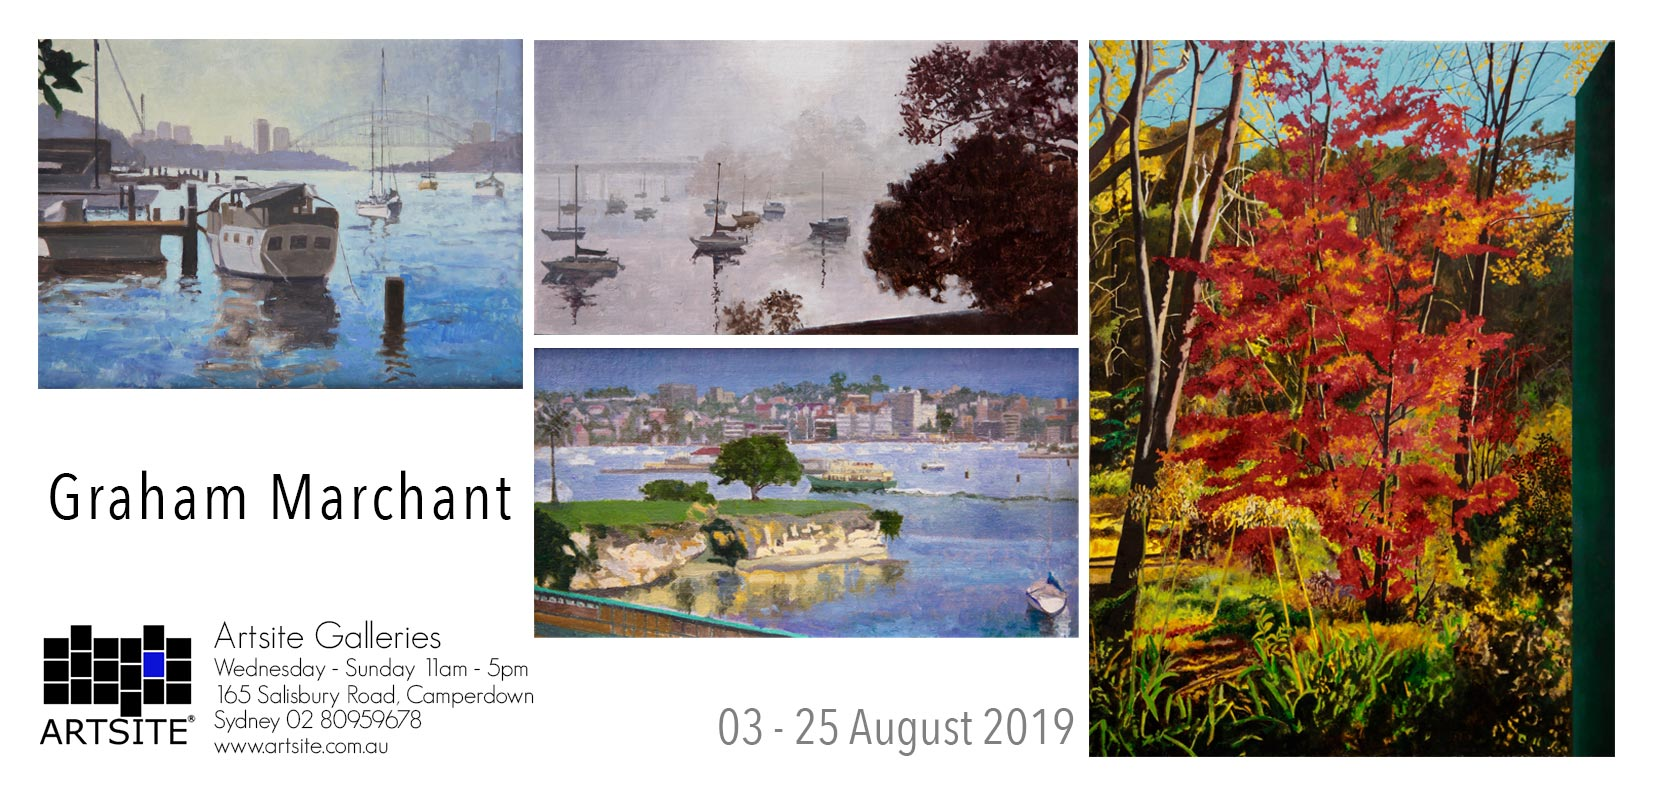 Artsite Gallery Exhibition | Gallery.1 | Graham Marchant | Solo Exhibition | 03 -23 August 2019